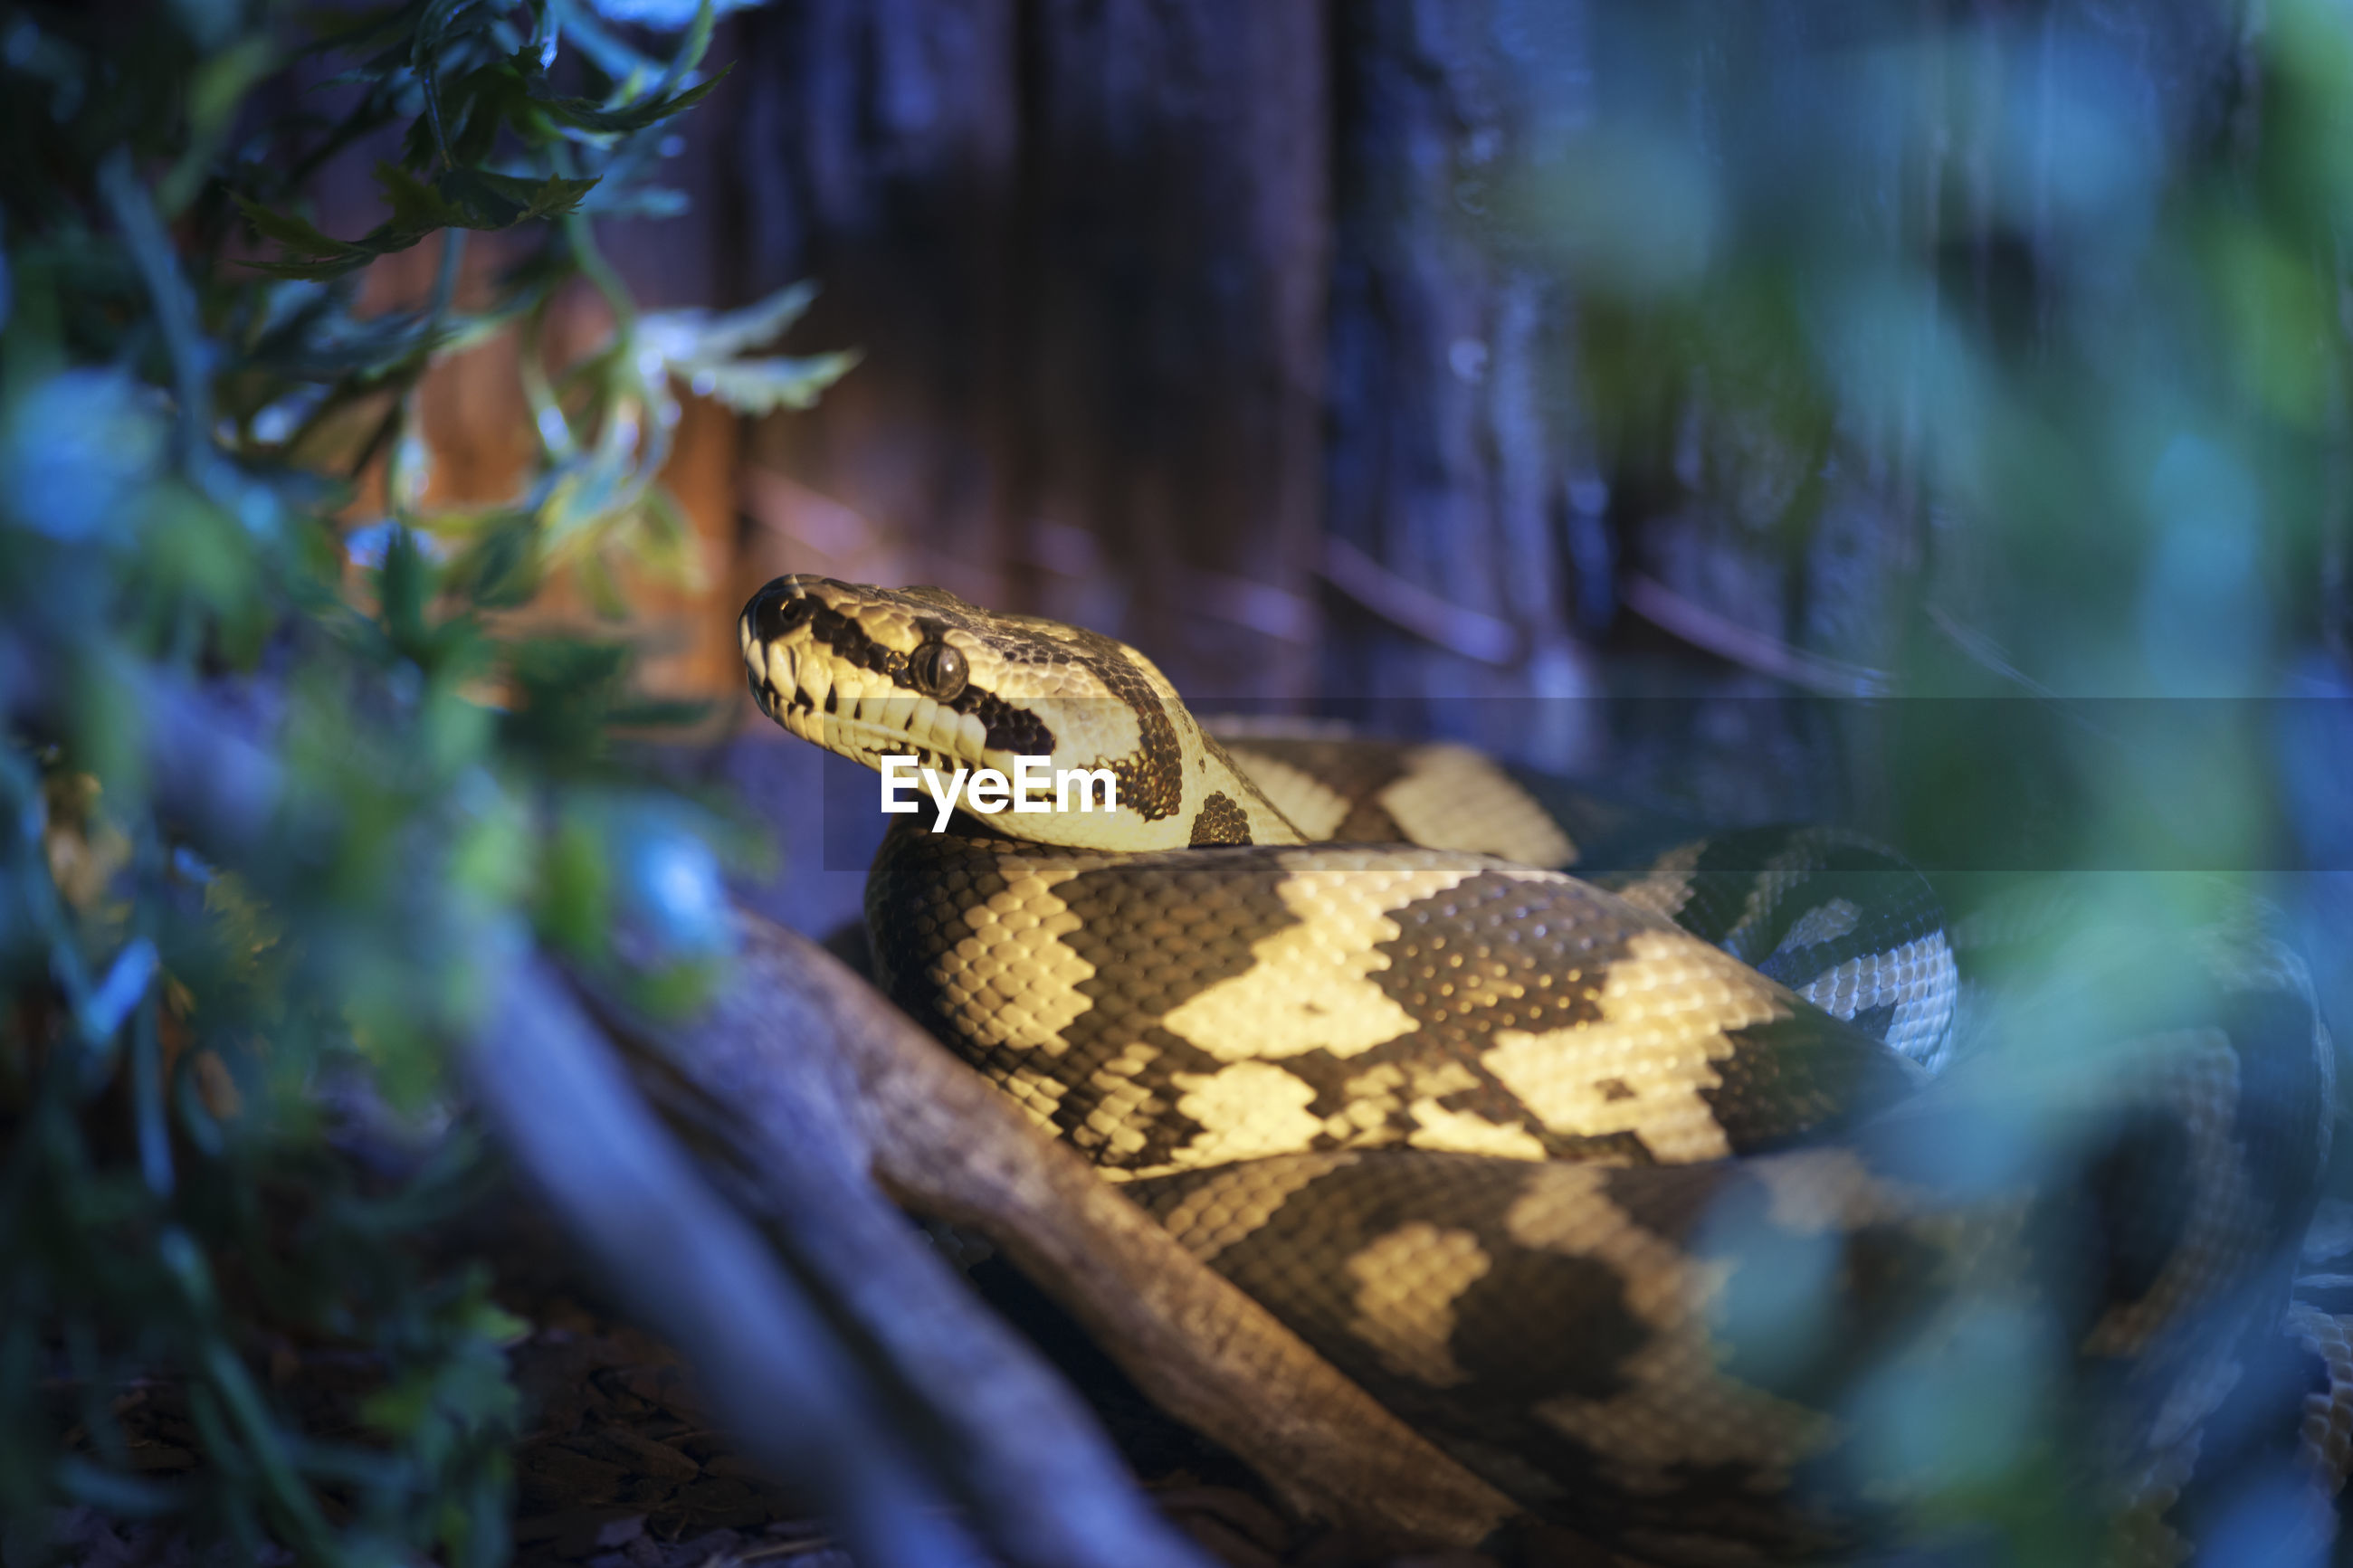 Close-up of snake amidst plants at zoo